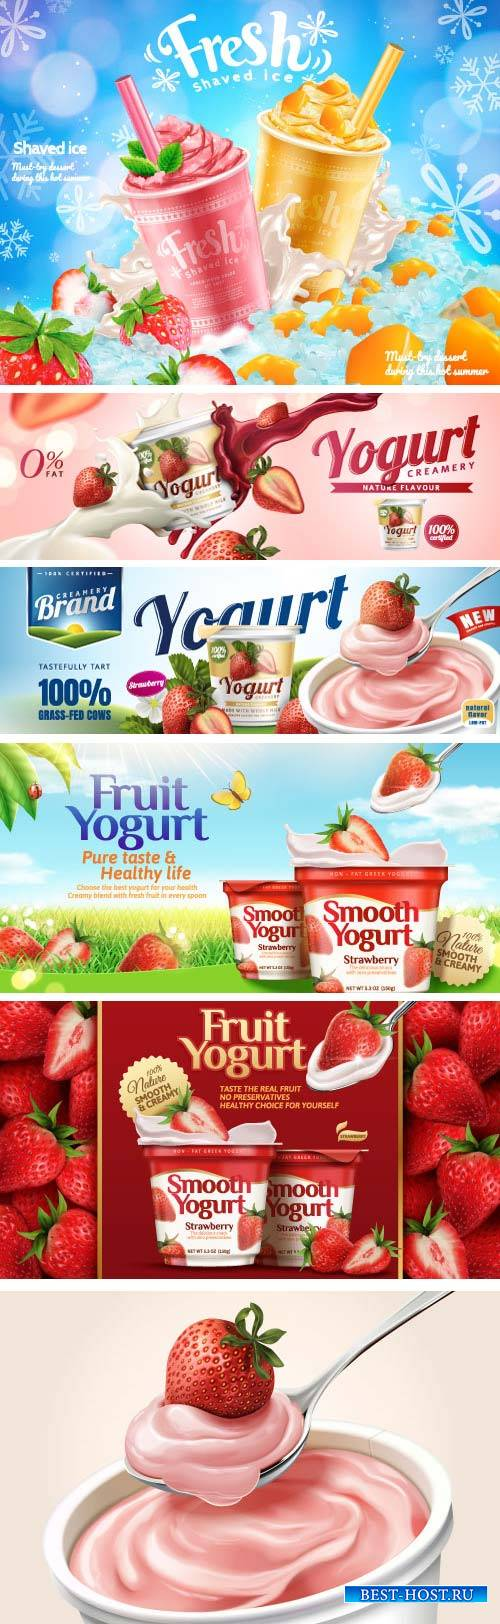 Berry yogurt ads vector illustration template